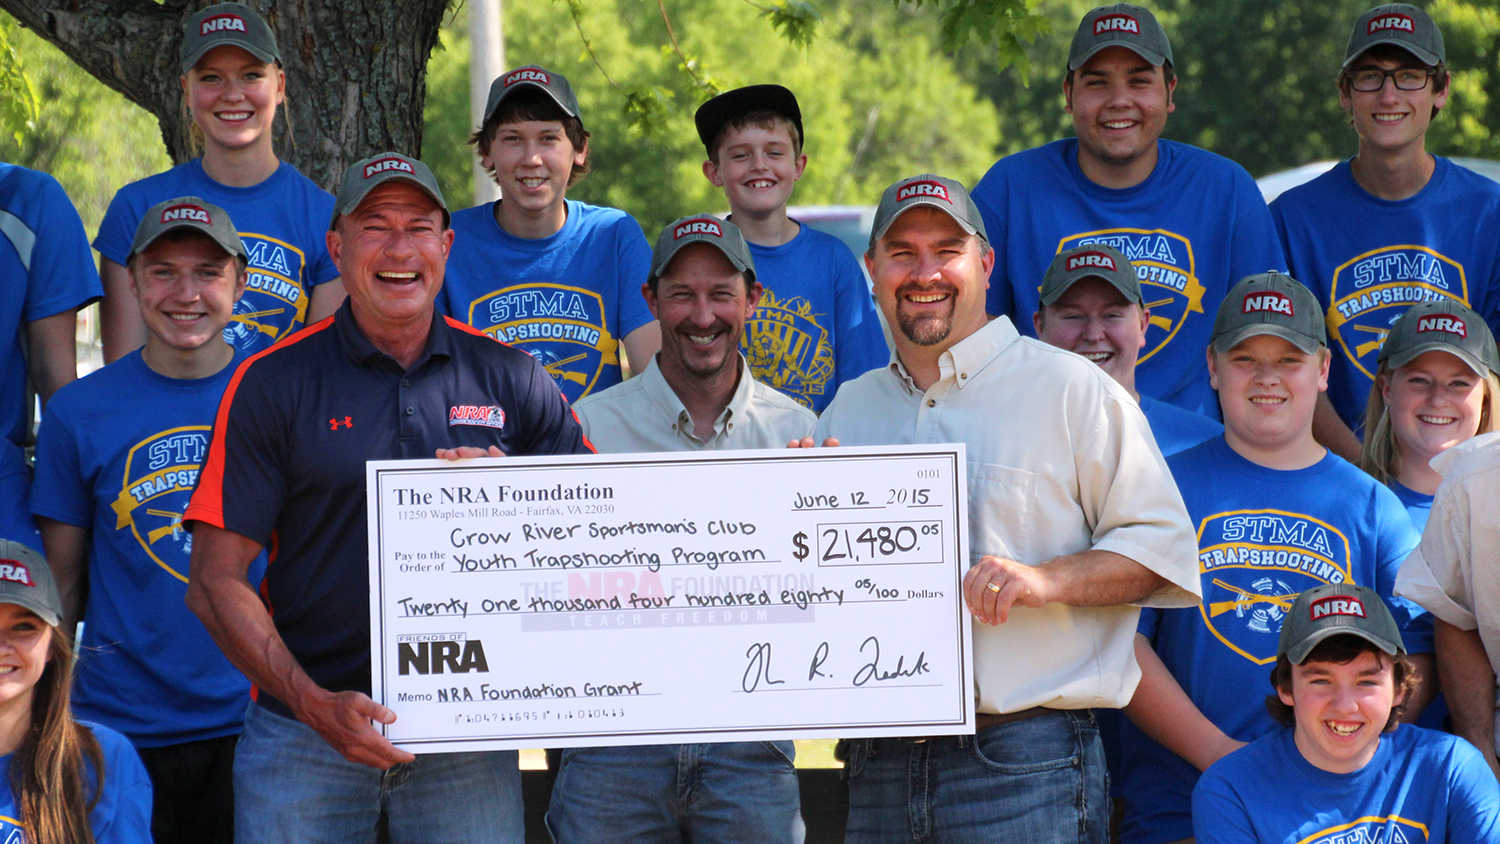 NRA Foundation CFO Visits Minnesota Sportsmen's Club